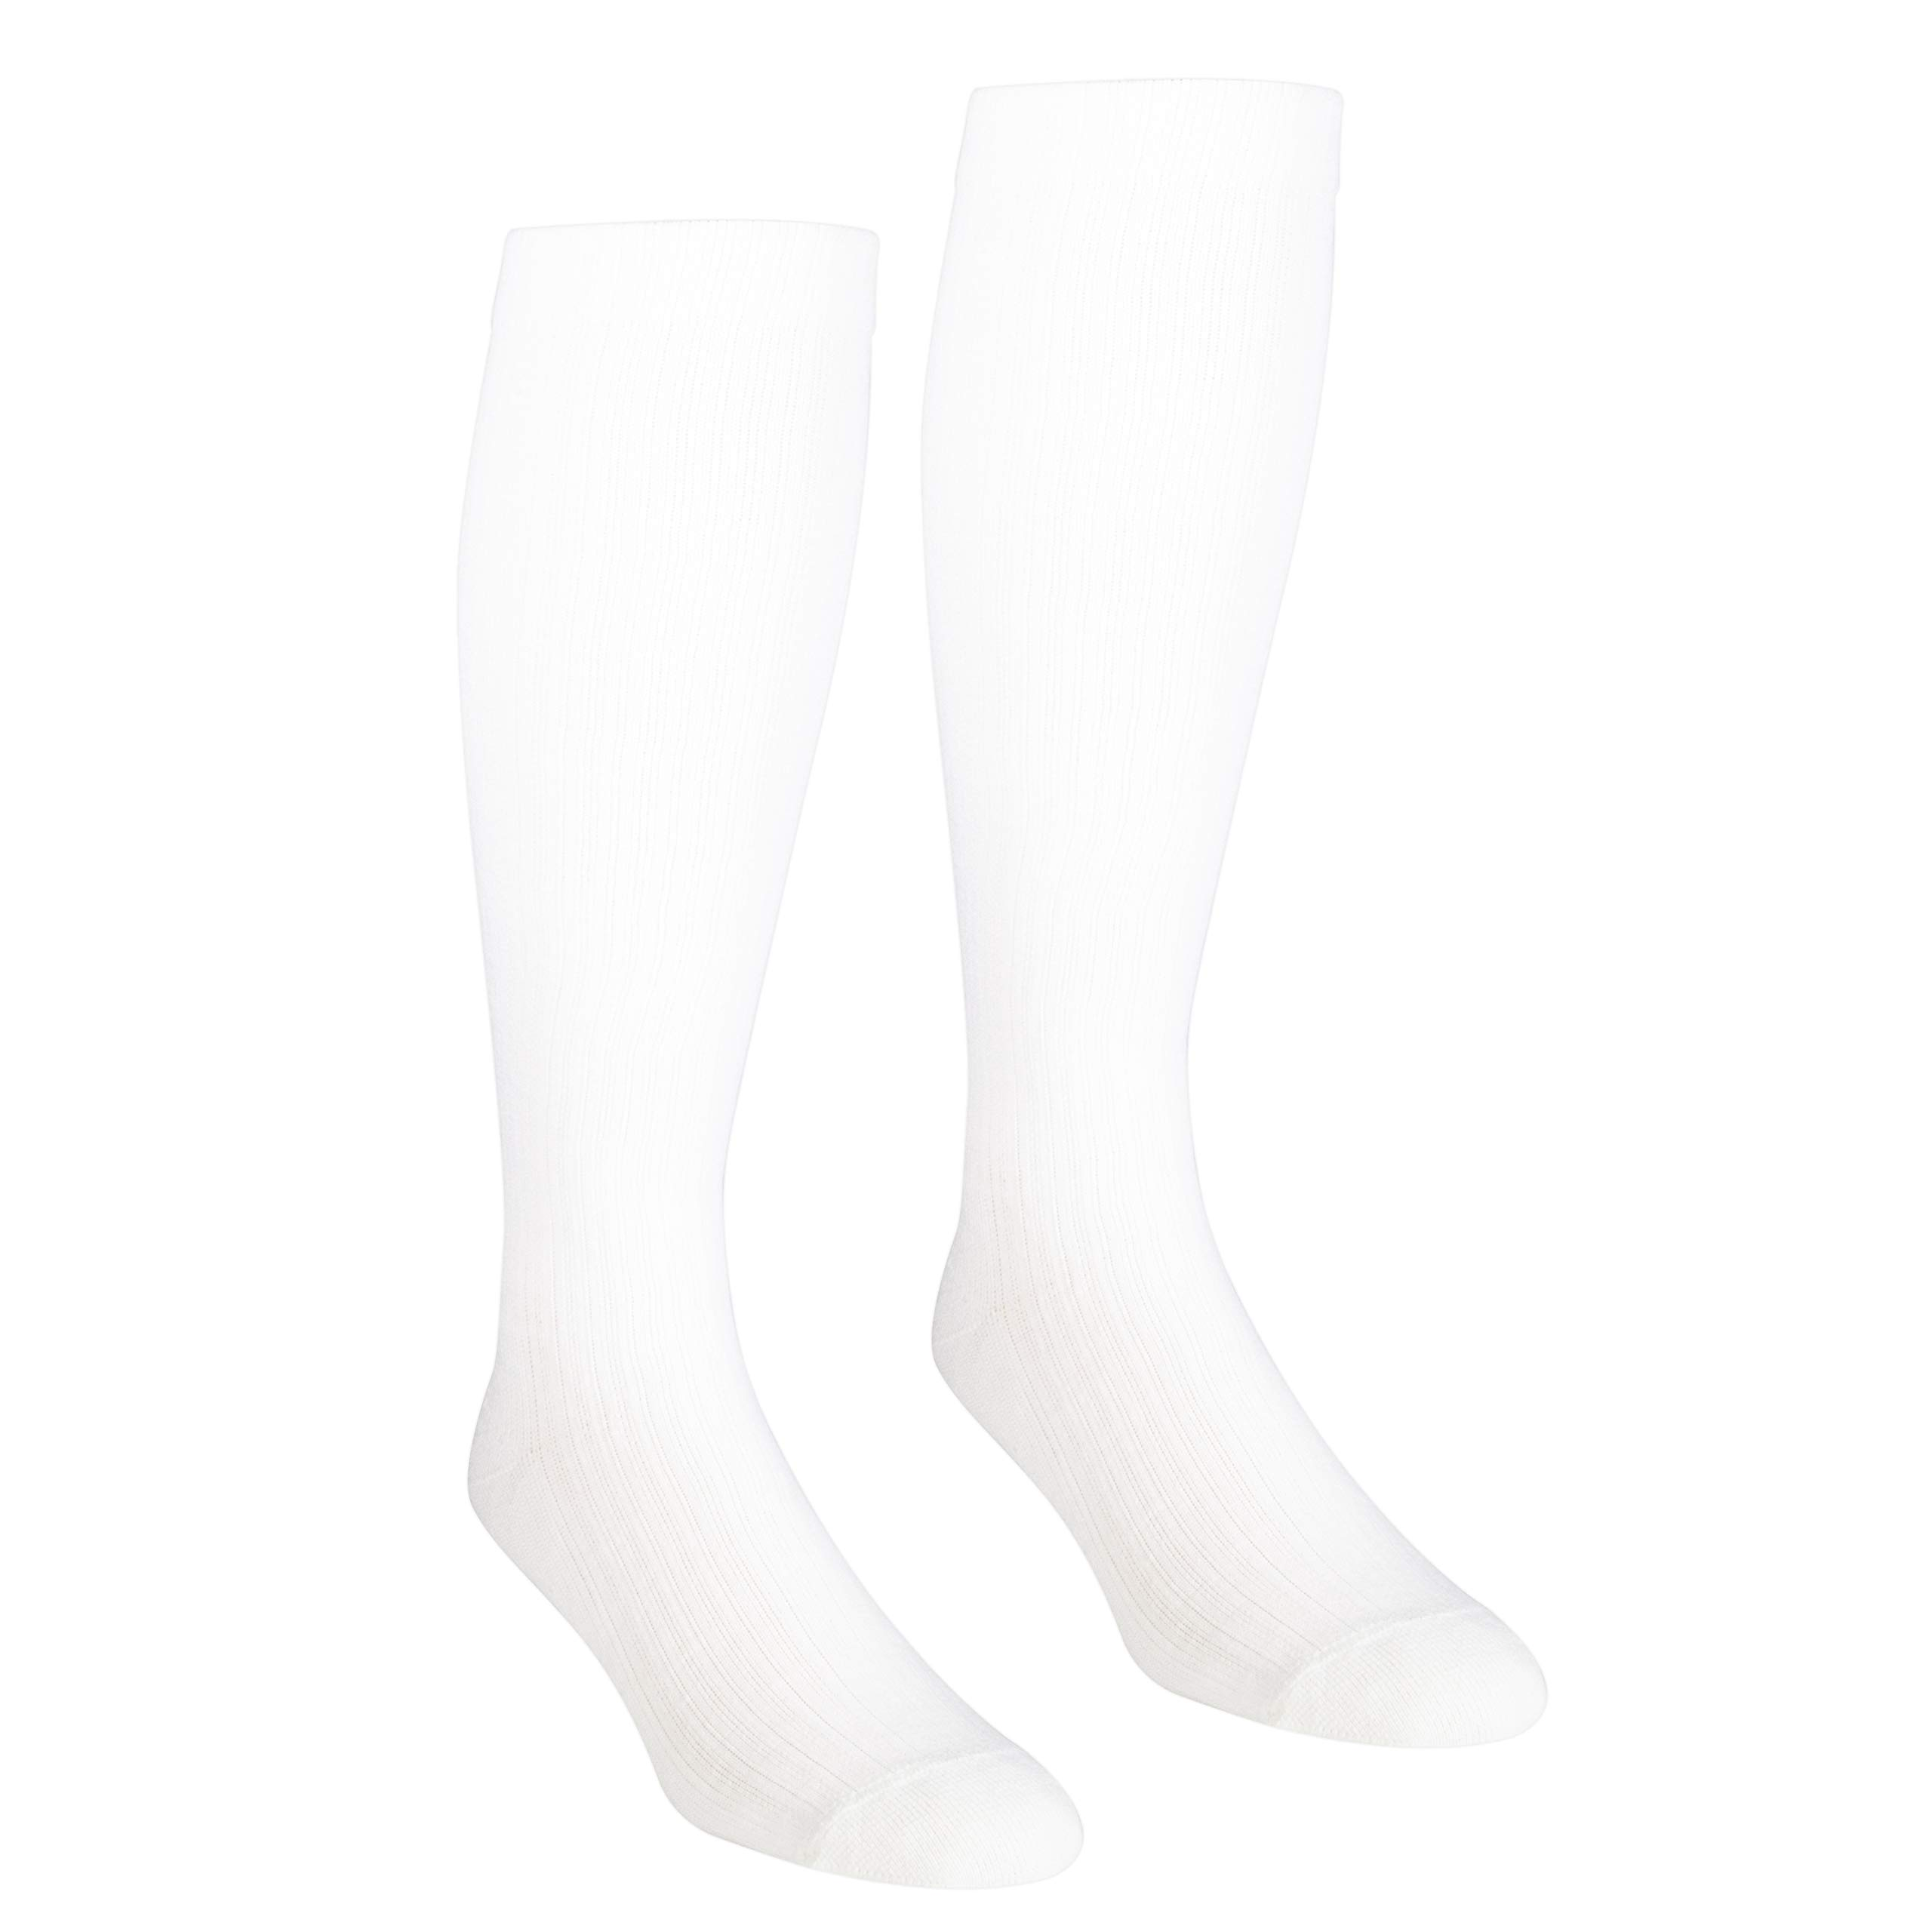 NuVein Women's Compression Socks Casual Tube Style Comfort Knit Active Support Cushion Foot, White, Large